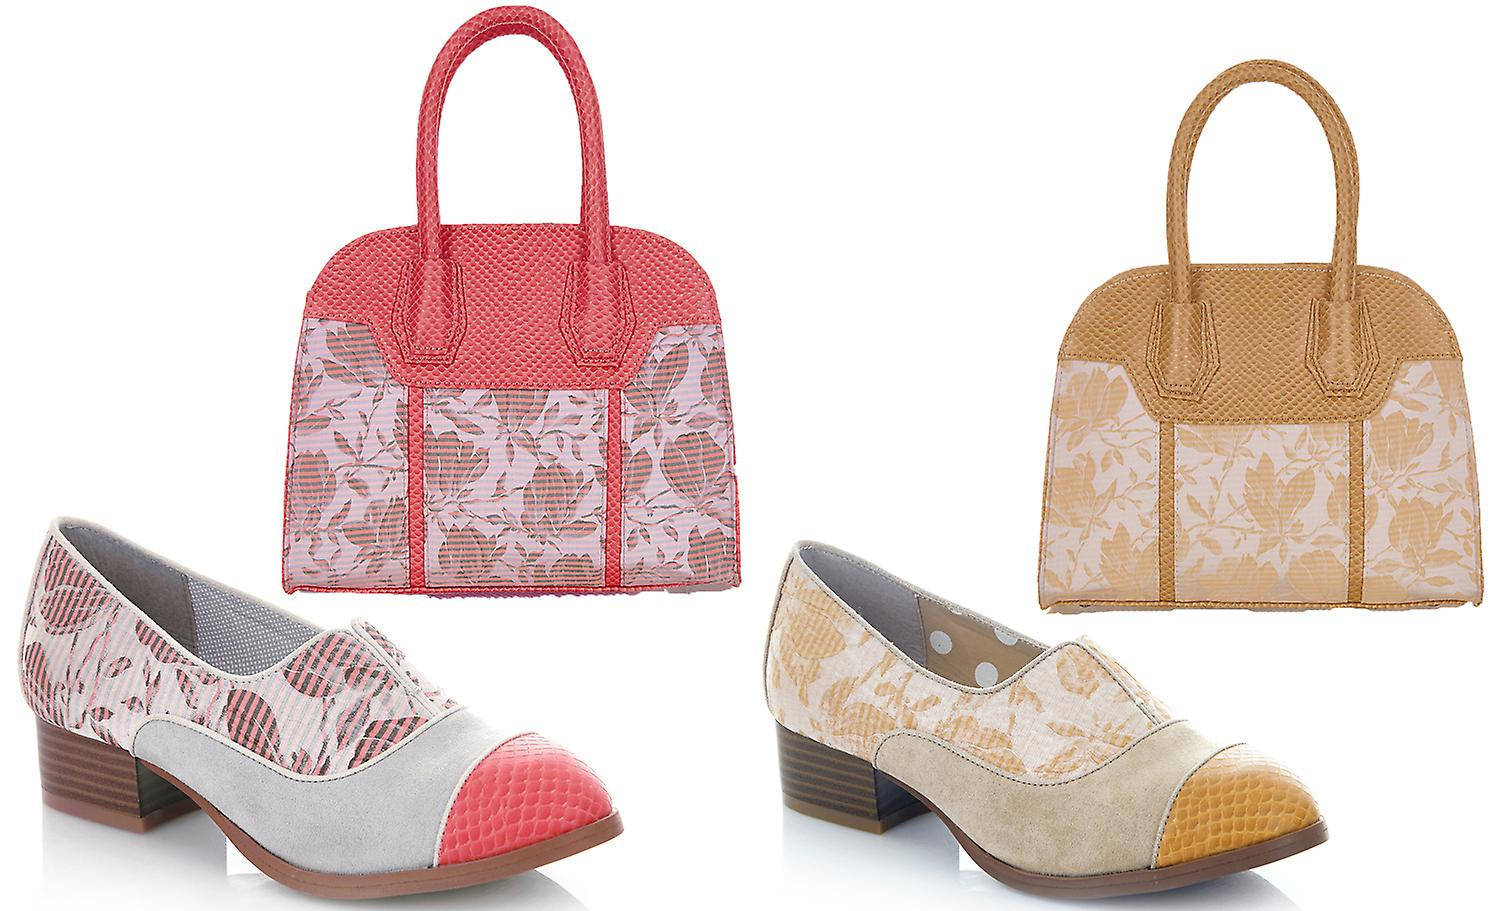 Ruby Shoo Brooke Coral Low Heel Loafers & Matching Cancun Bag EQtoK